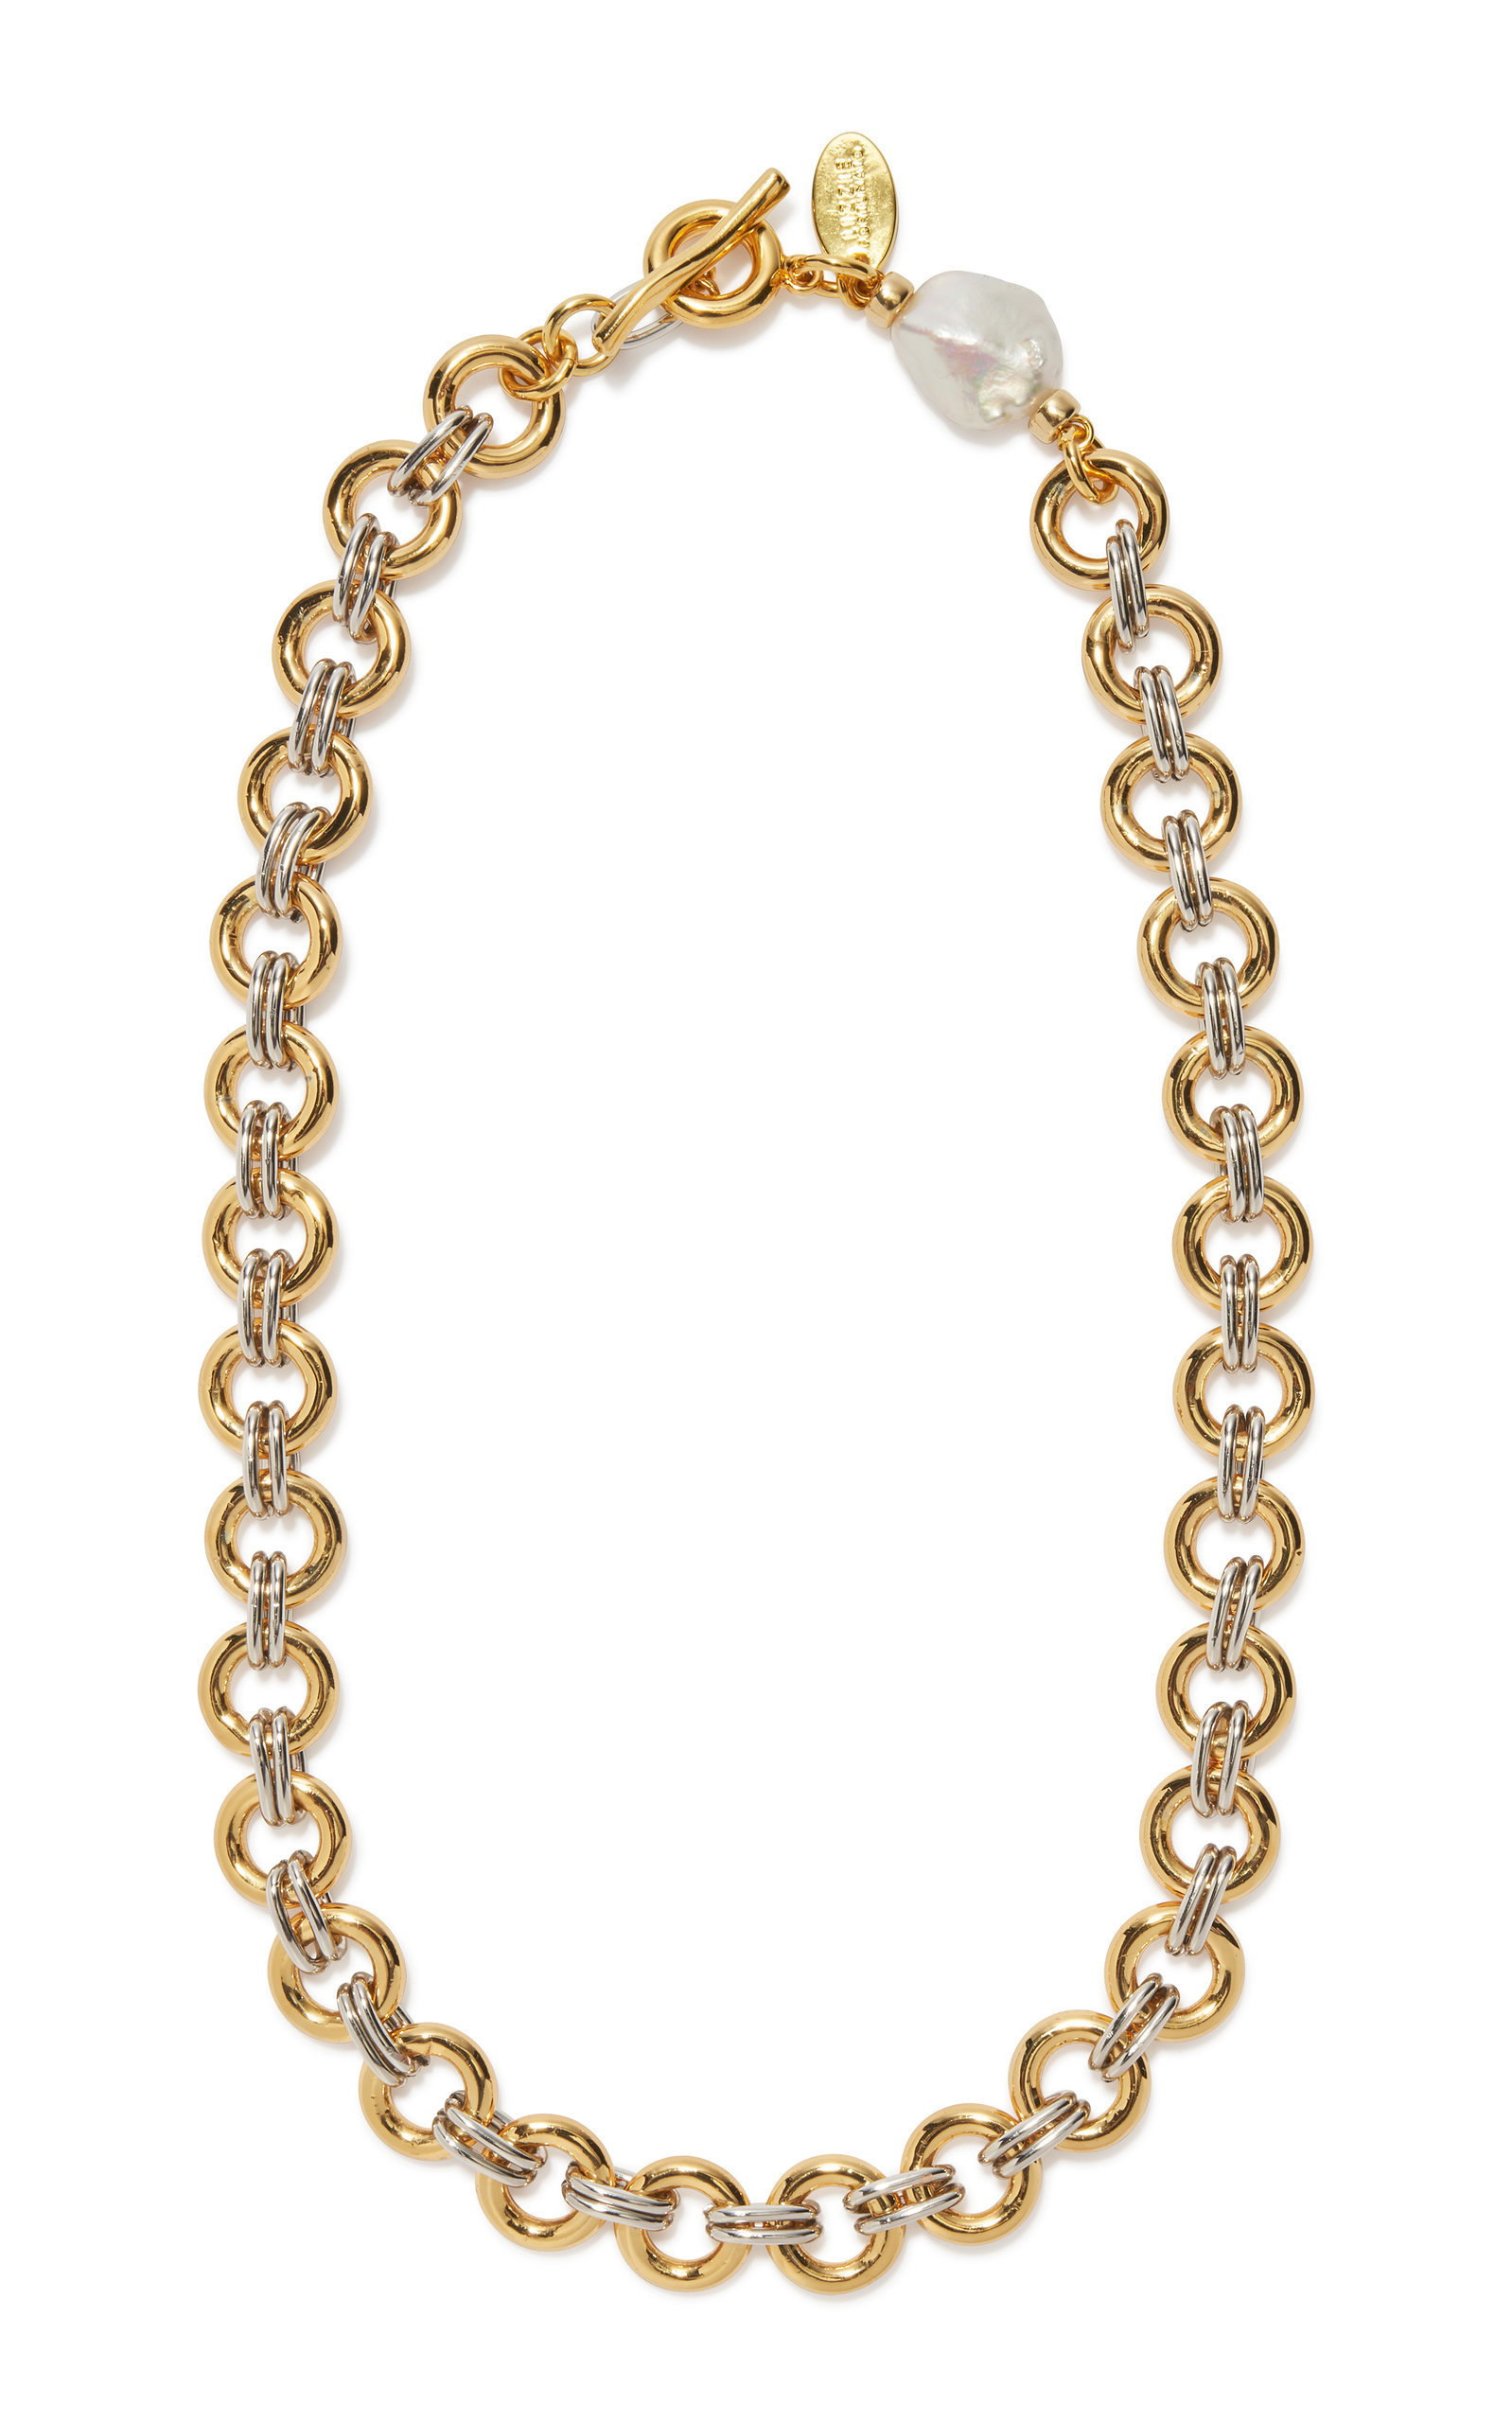 Women's Gold and Silver Plated Duet Chain Necklace